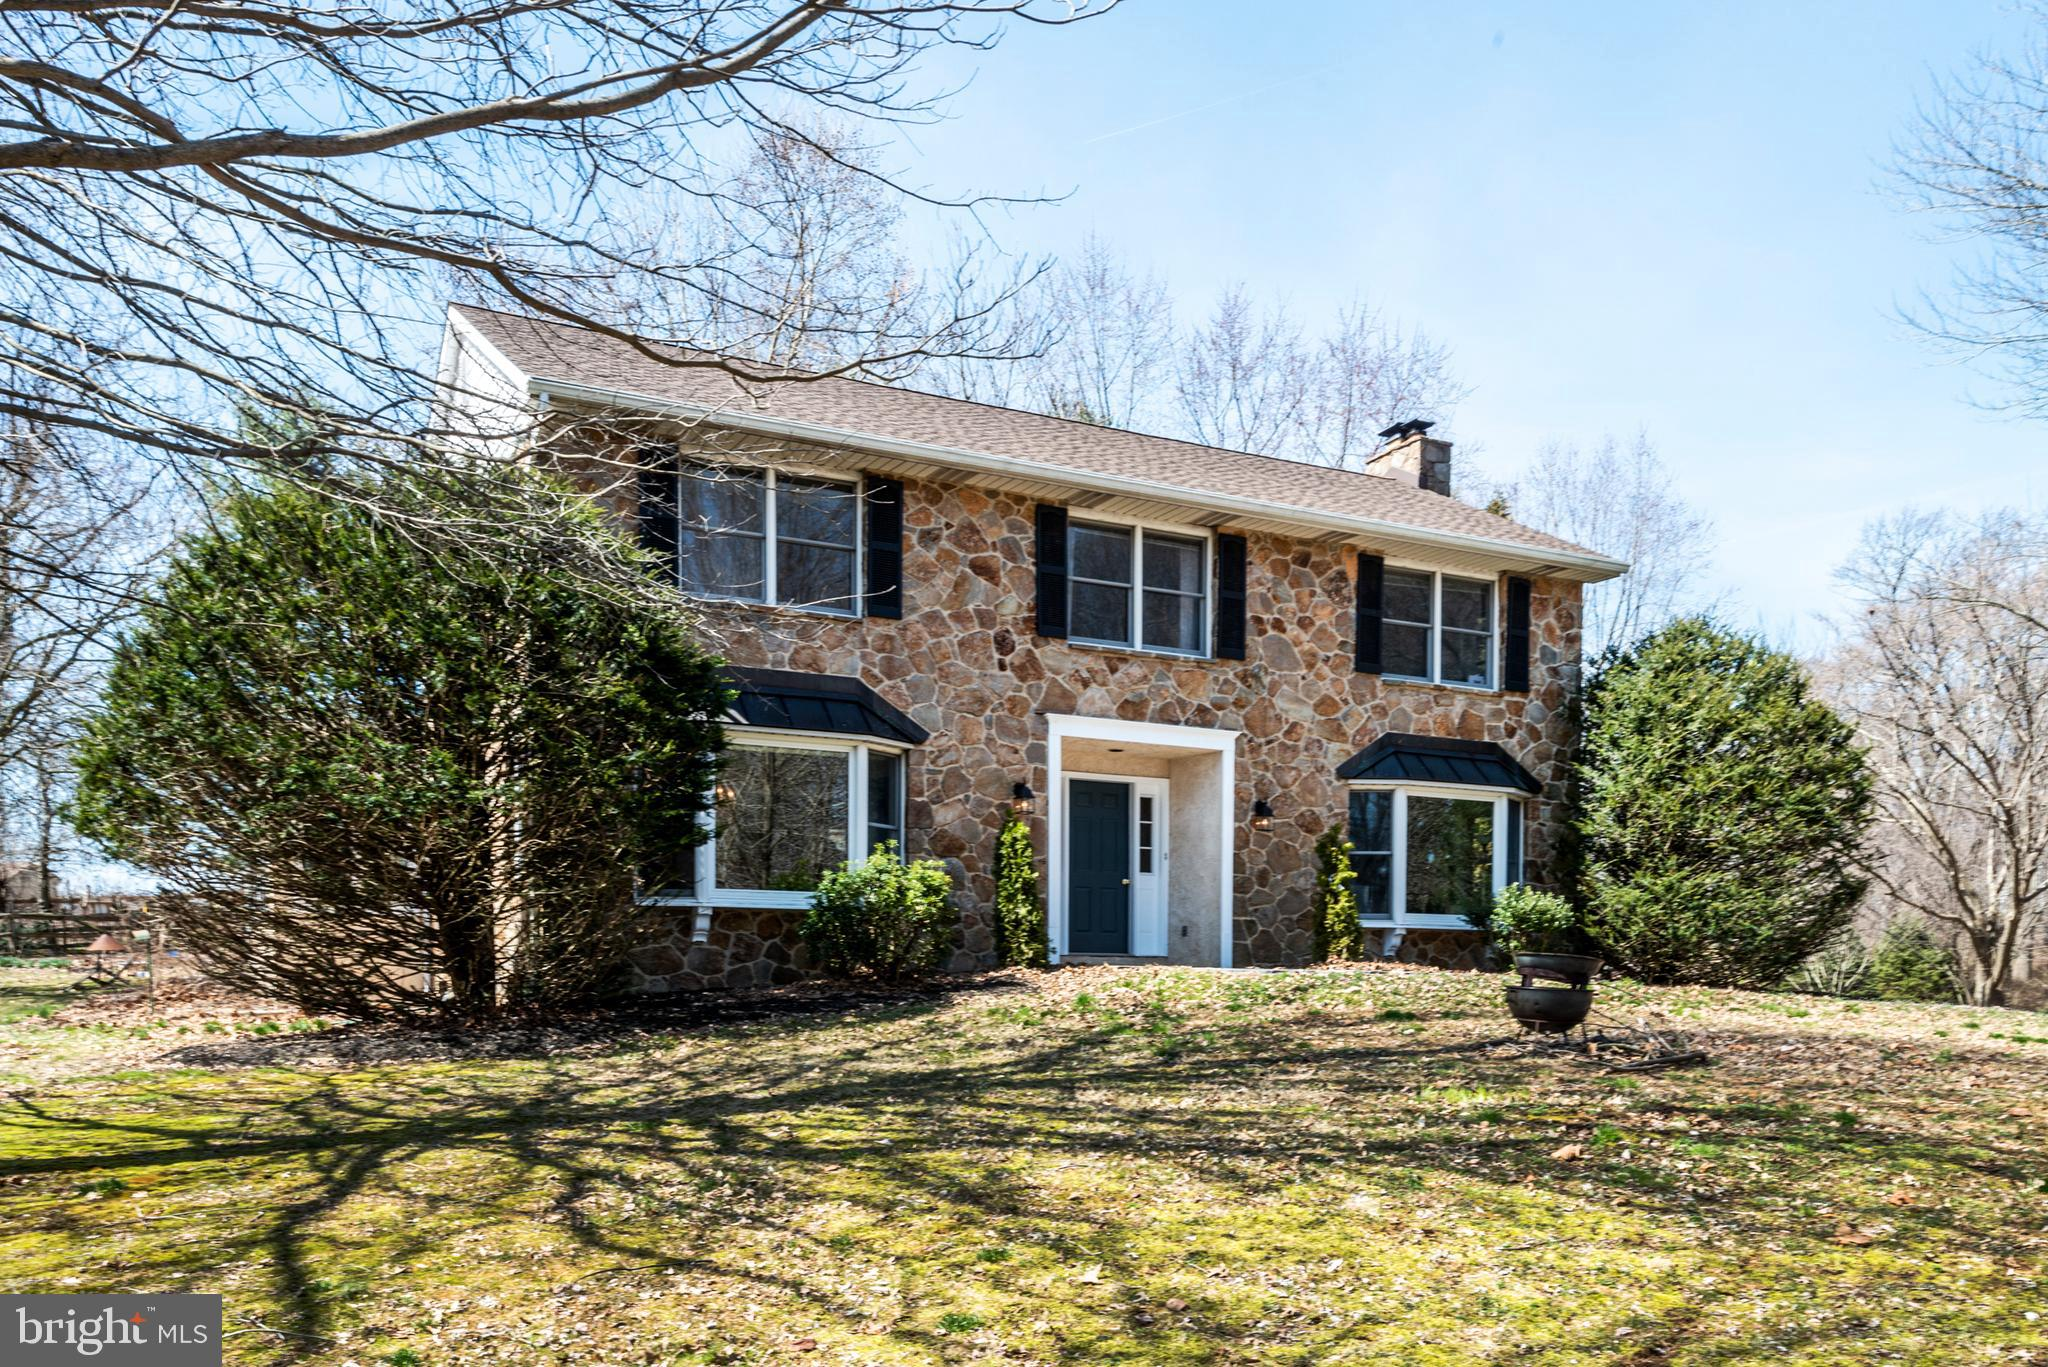 229 VALLEY ROAD, WEST GROVE, PA 19390